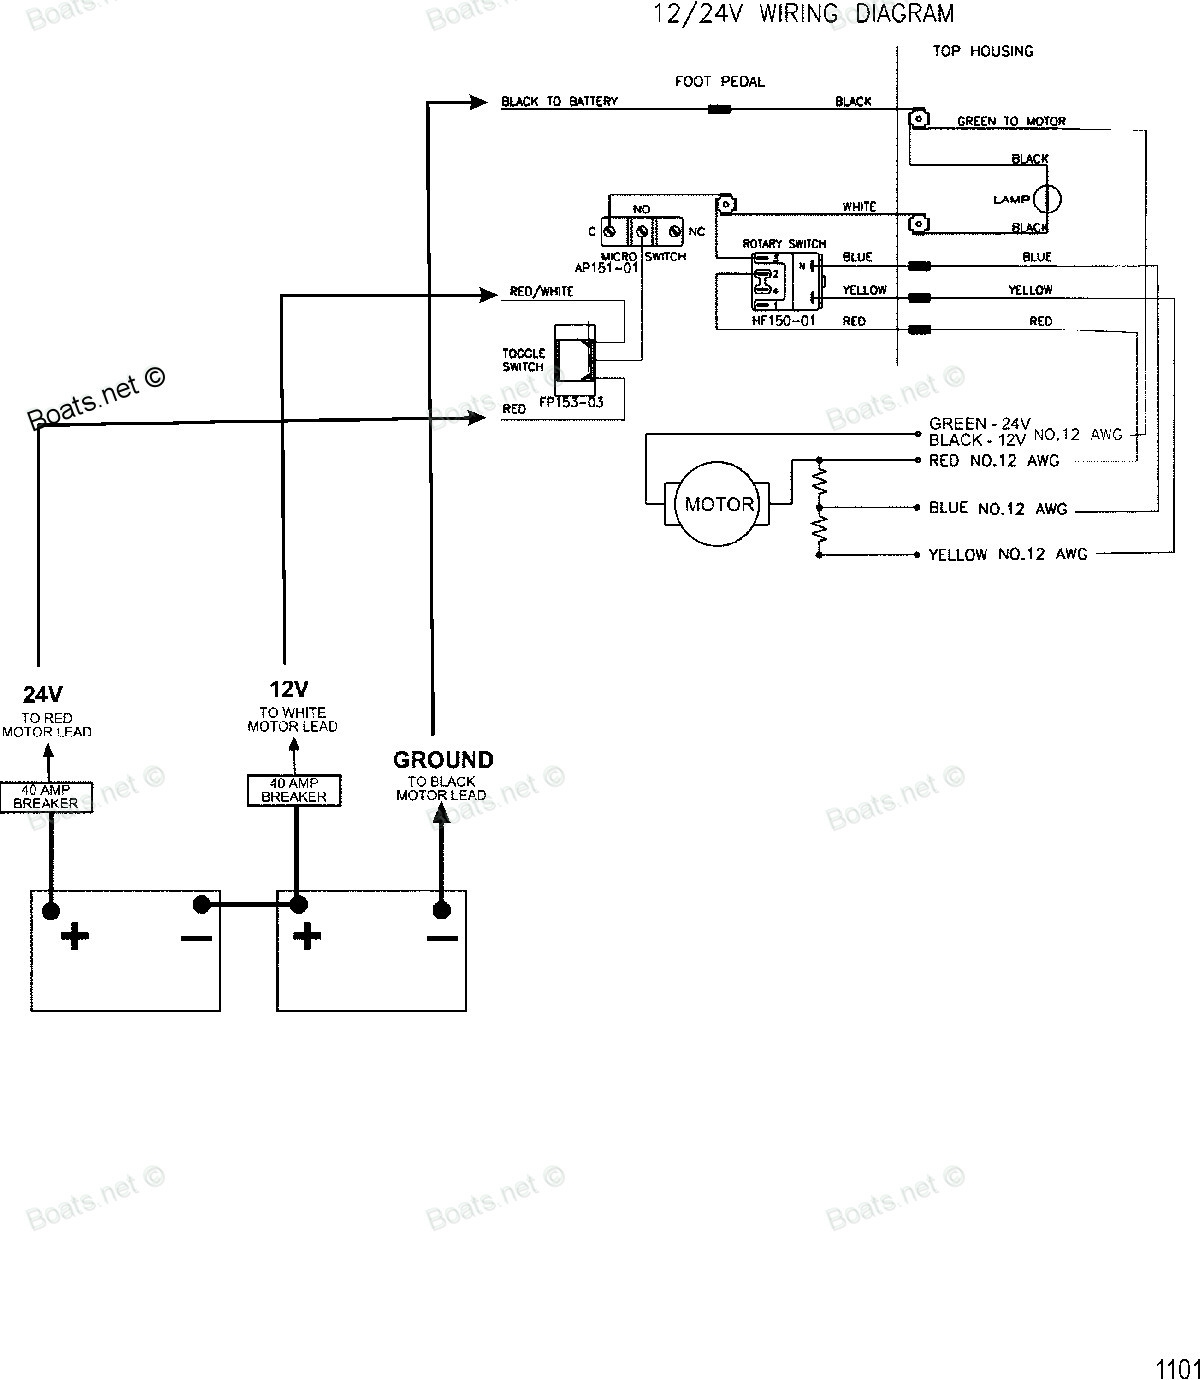 hight resolution of motorguide wiring diagram wiring diagrams for motorguide w75 wiring diagram motorguide wiring diagram source motorguide trolling motor